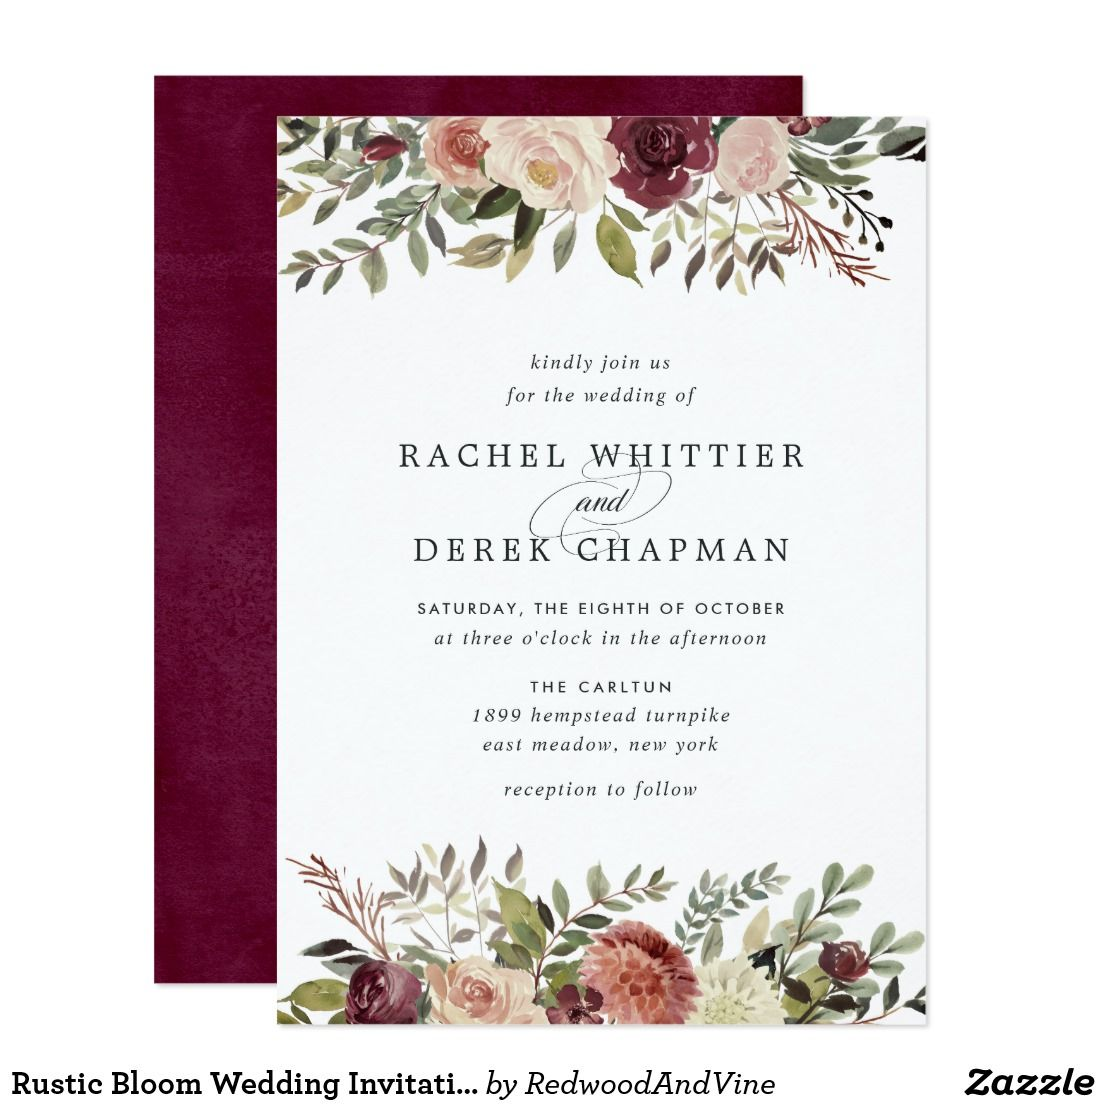 Rustic Bloom Wedding Invitation Elegant Floral Invitations Or Fall Winter Weddings Feature Your Details Accented By Top And Bottom Borders Of: Rustic Wedding Invitations Fall Colors At Reisefeber.org